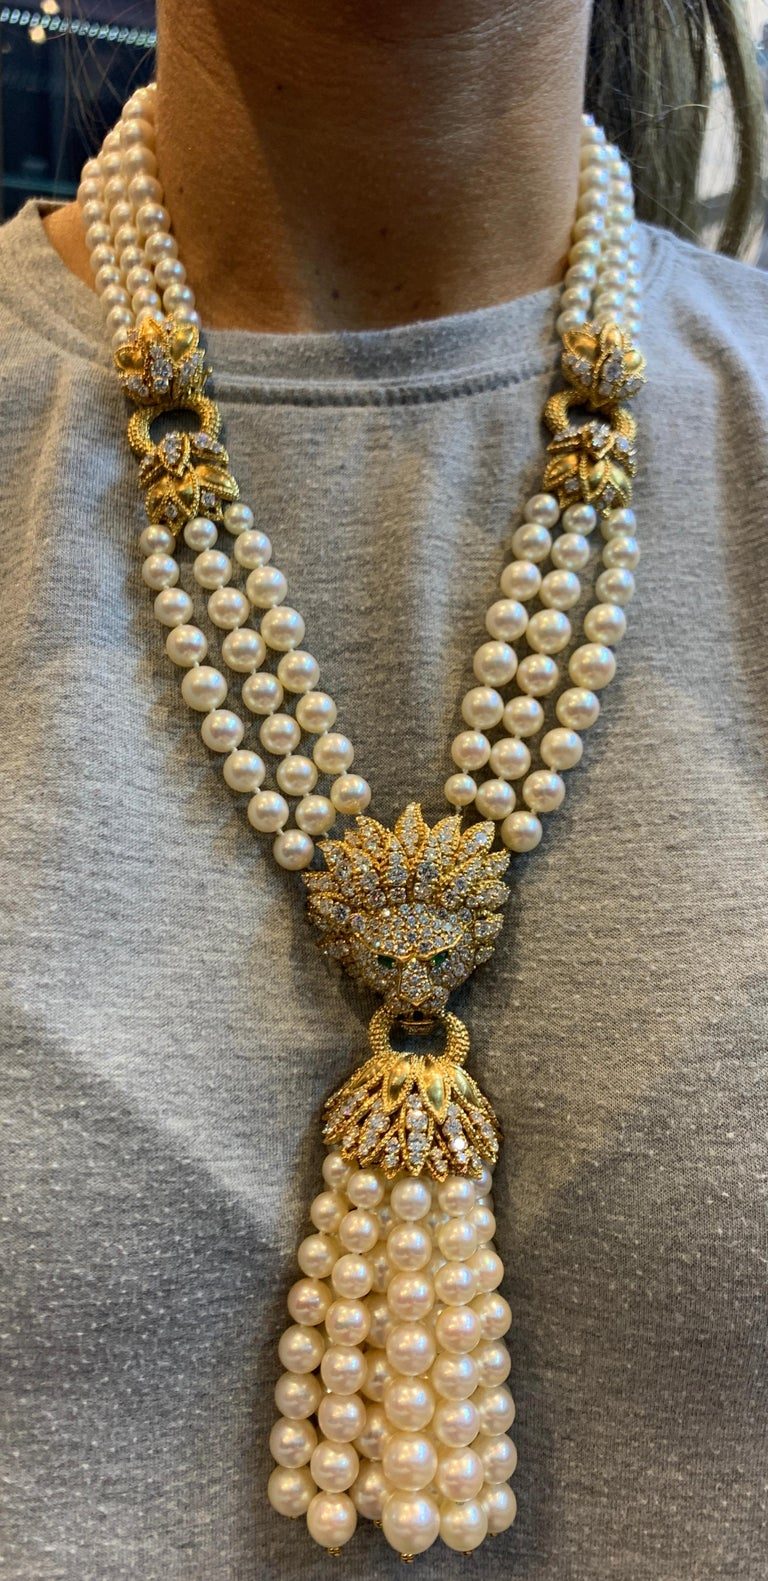 Bead Iconic Van Cleef & Arpels Pearl and Diamond Lion Necklace, Earrings and Ring Set